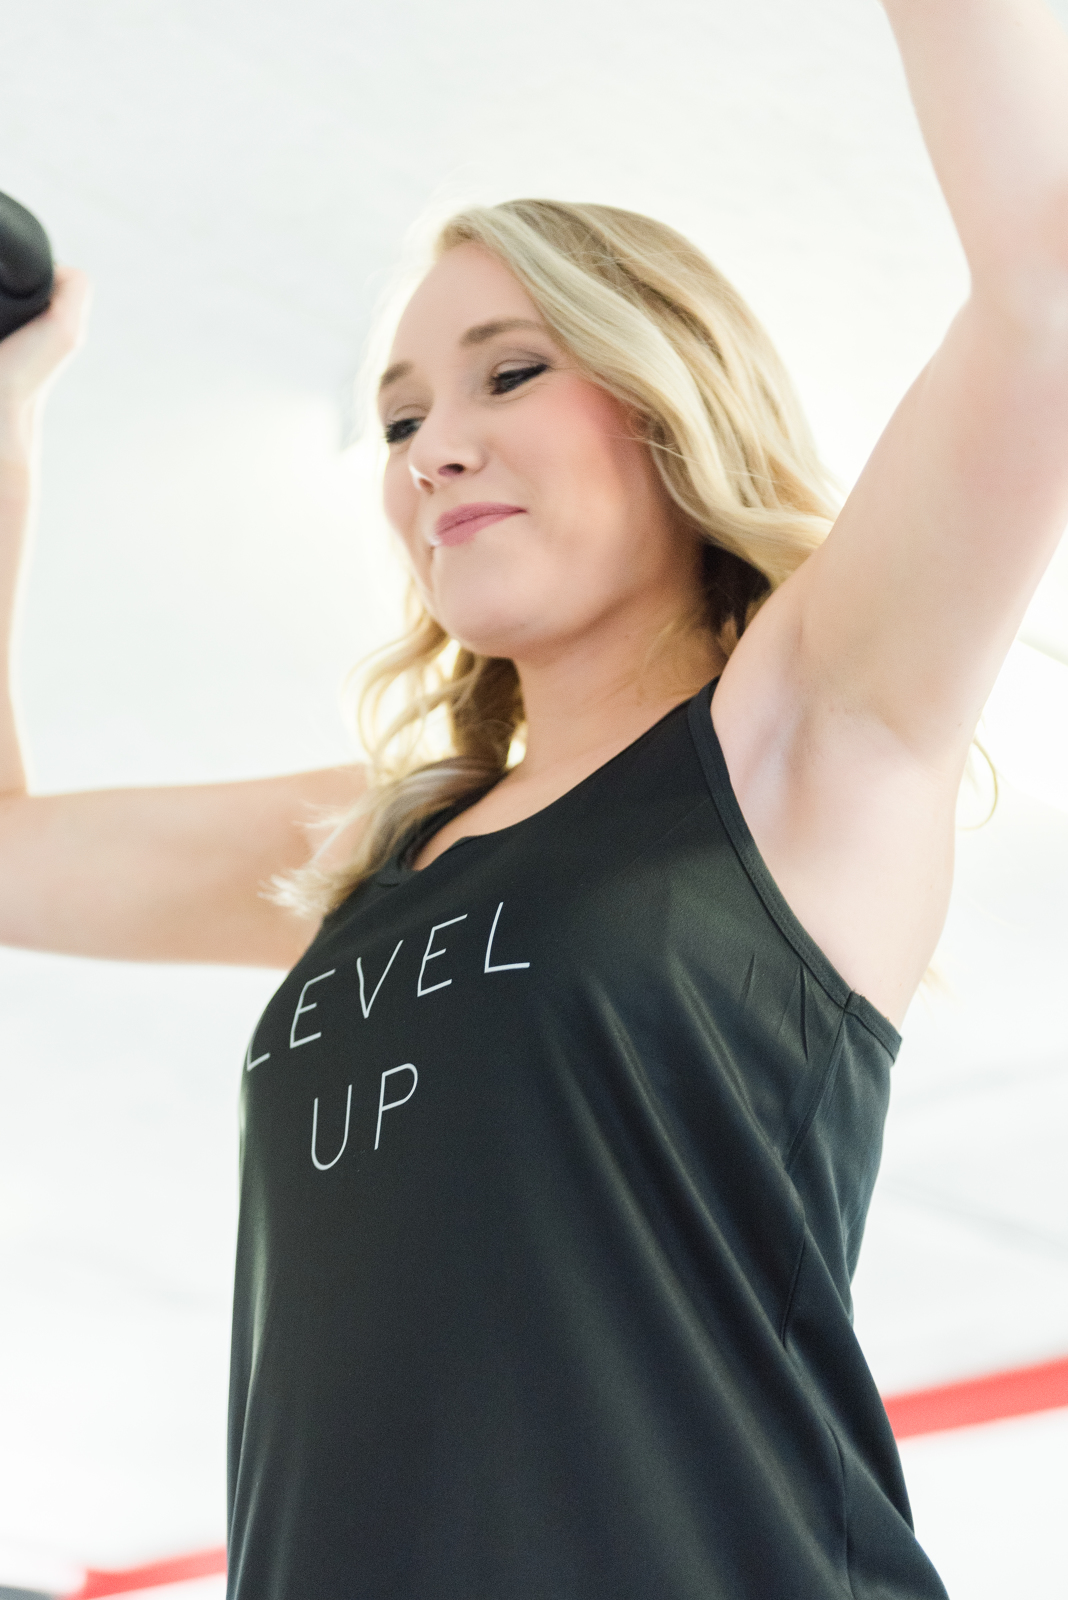 smiling woman working out in level up black tank